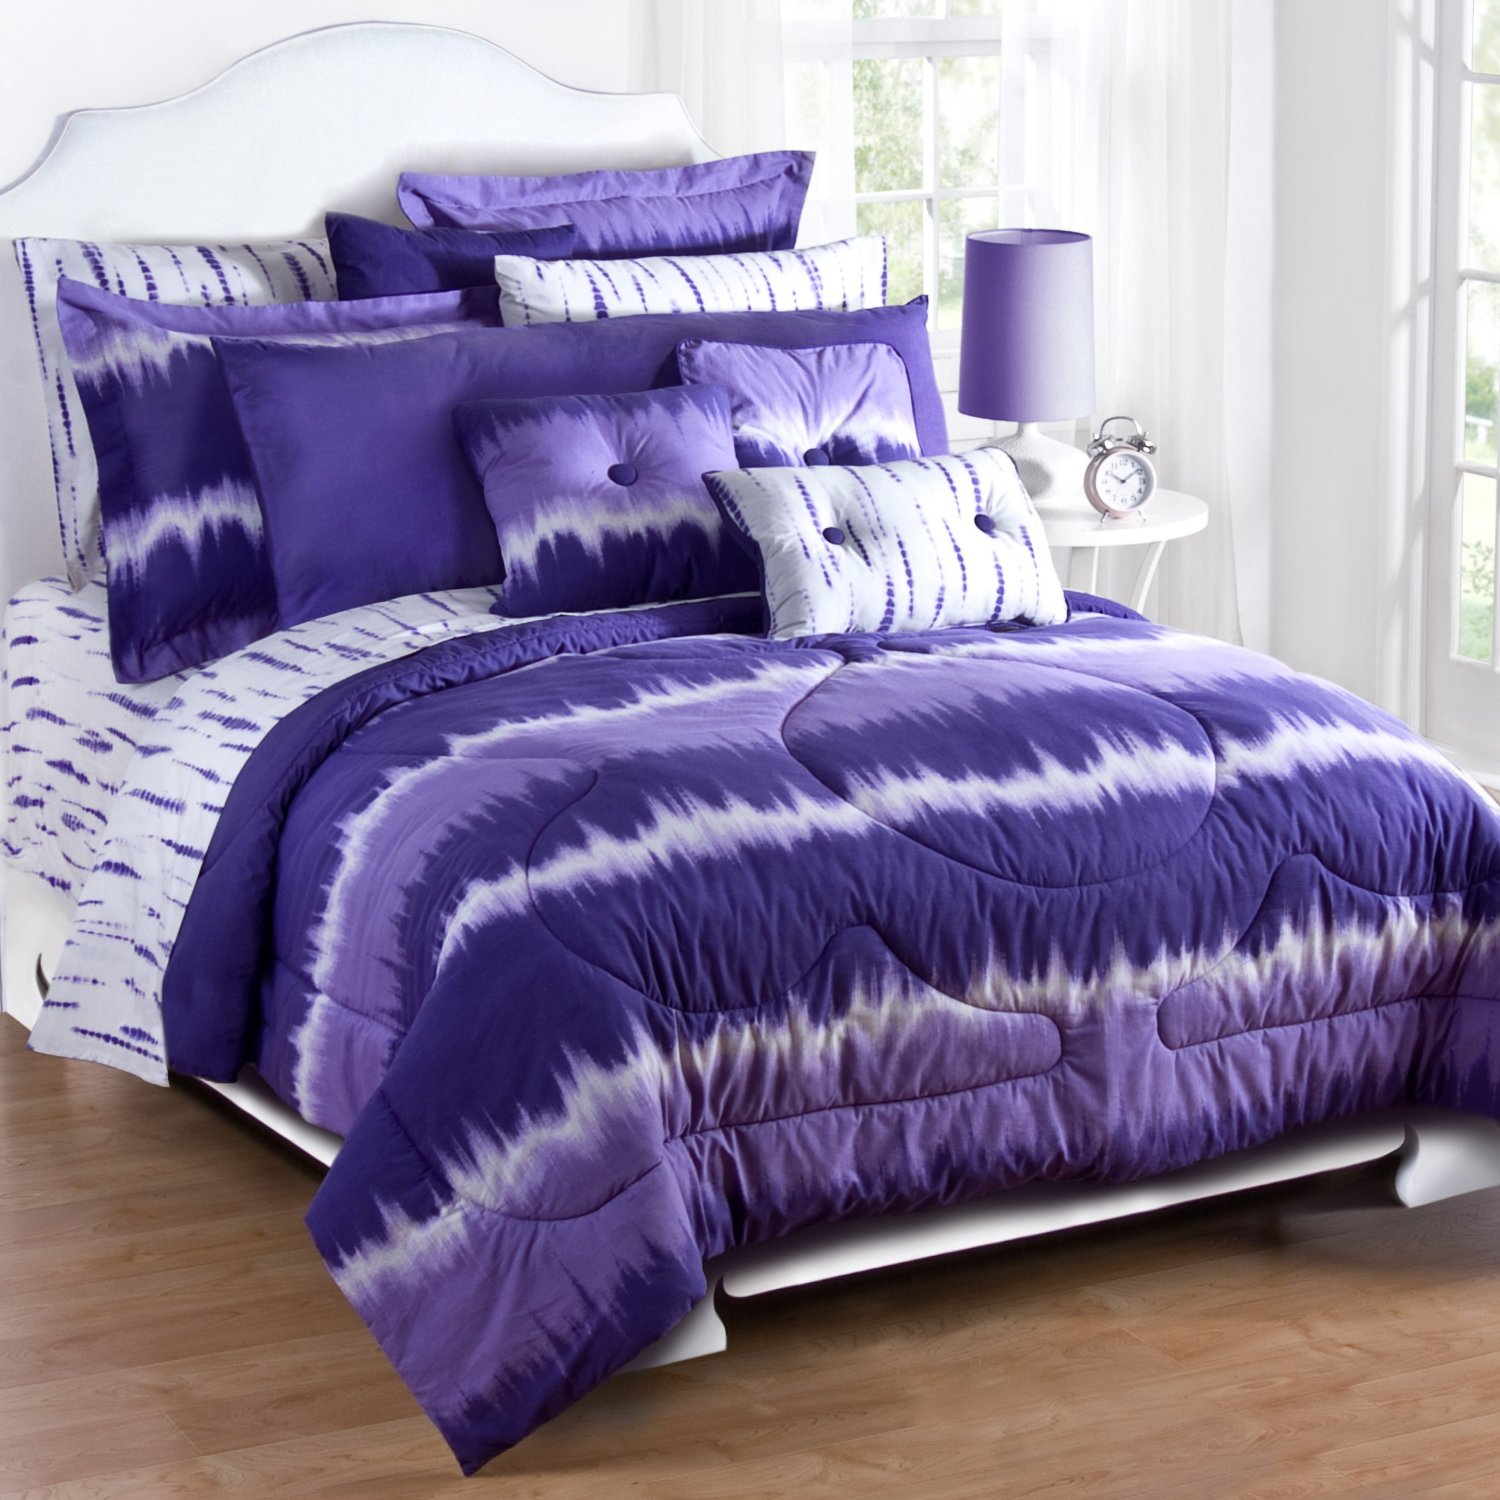 Cozy full comforter sets Bed queen size and king bedsize also pillows and cushion combined with headboards and curtains